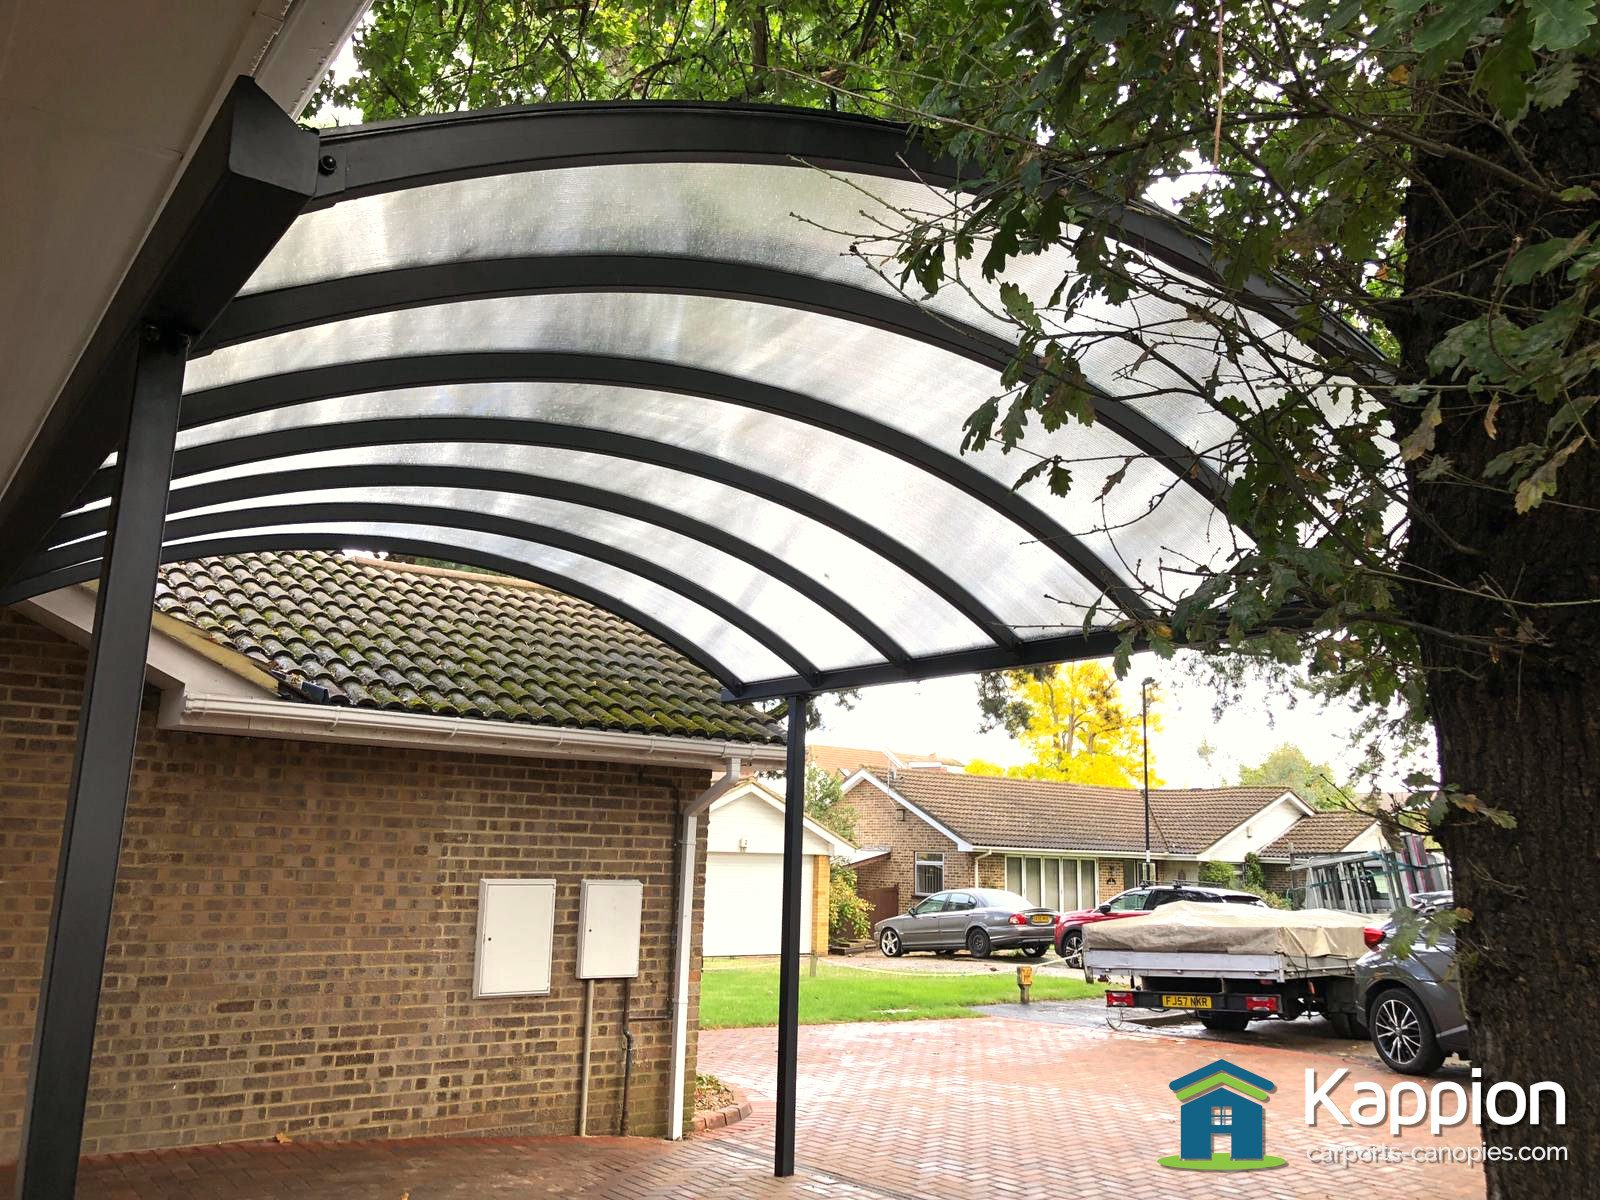 Entrance-Canopy-Carport-Karen-004